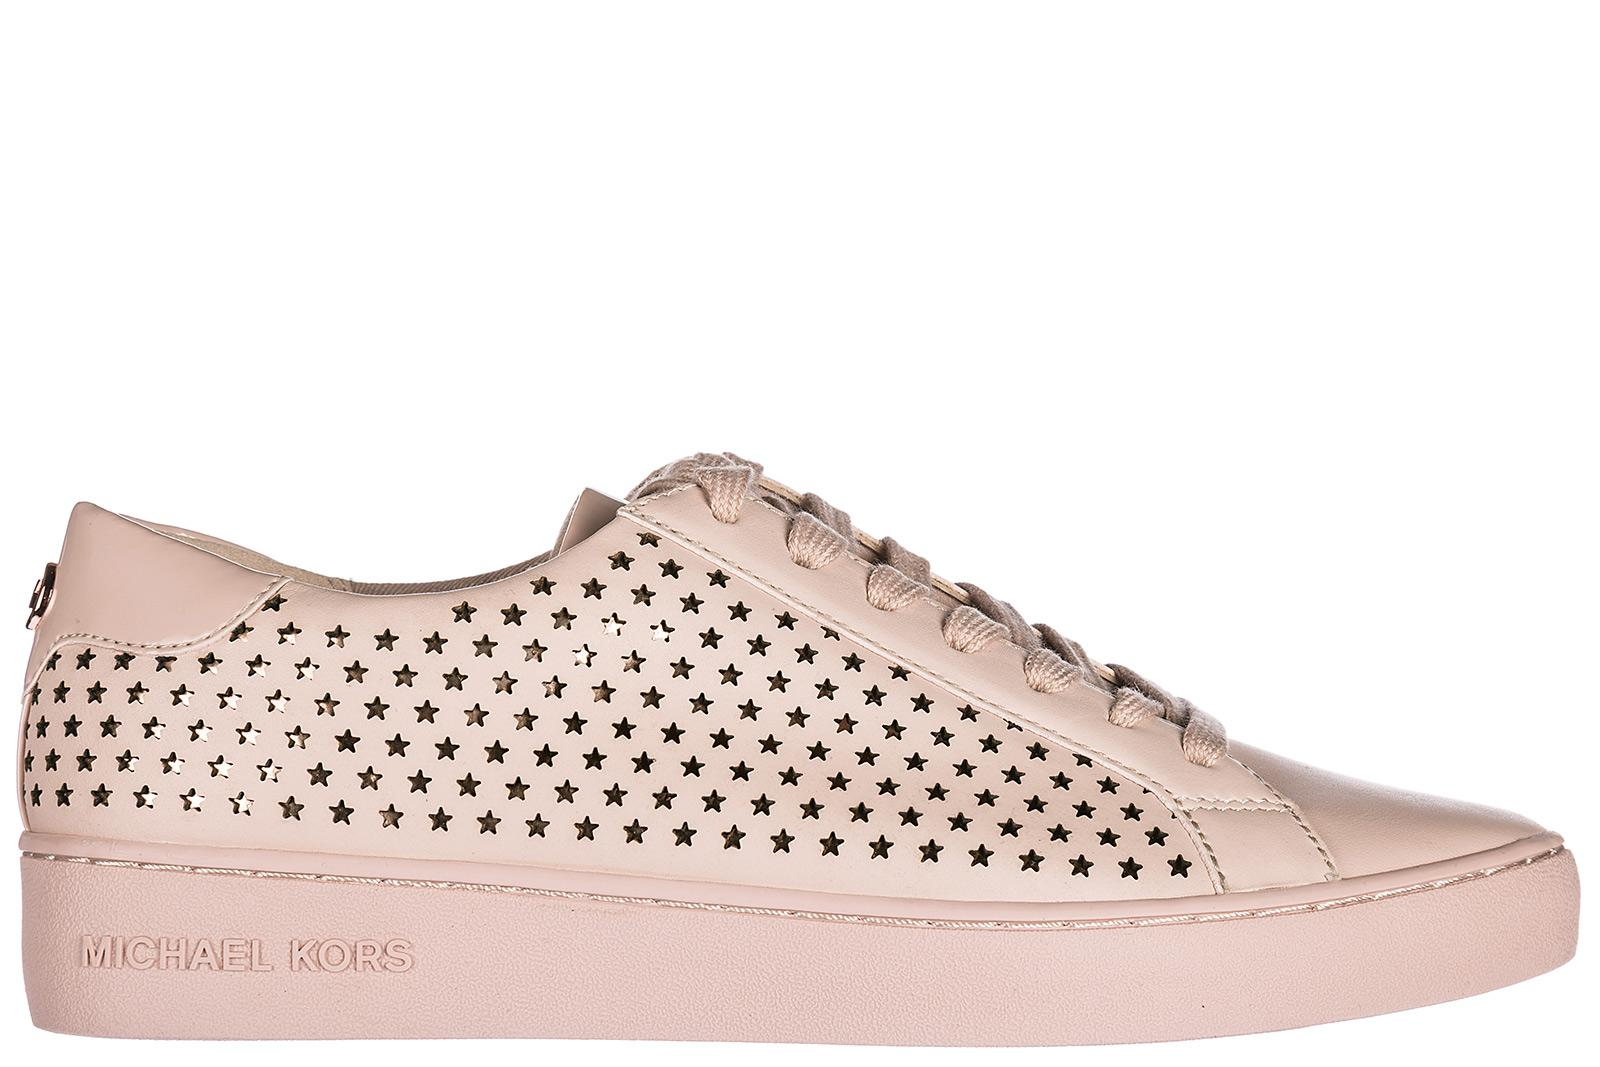 Michael Kors Women's Shoes Leather Trainers Sneakers Irving In Pink